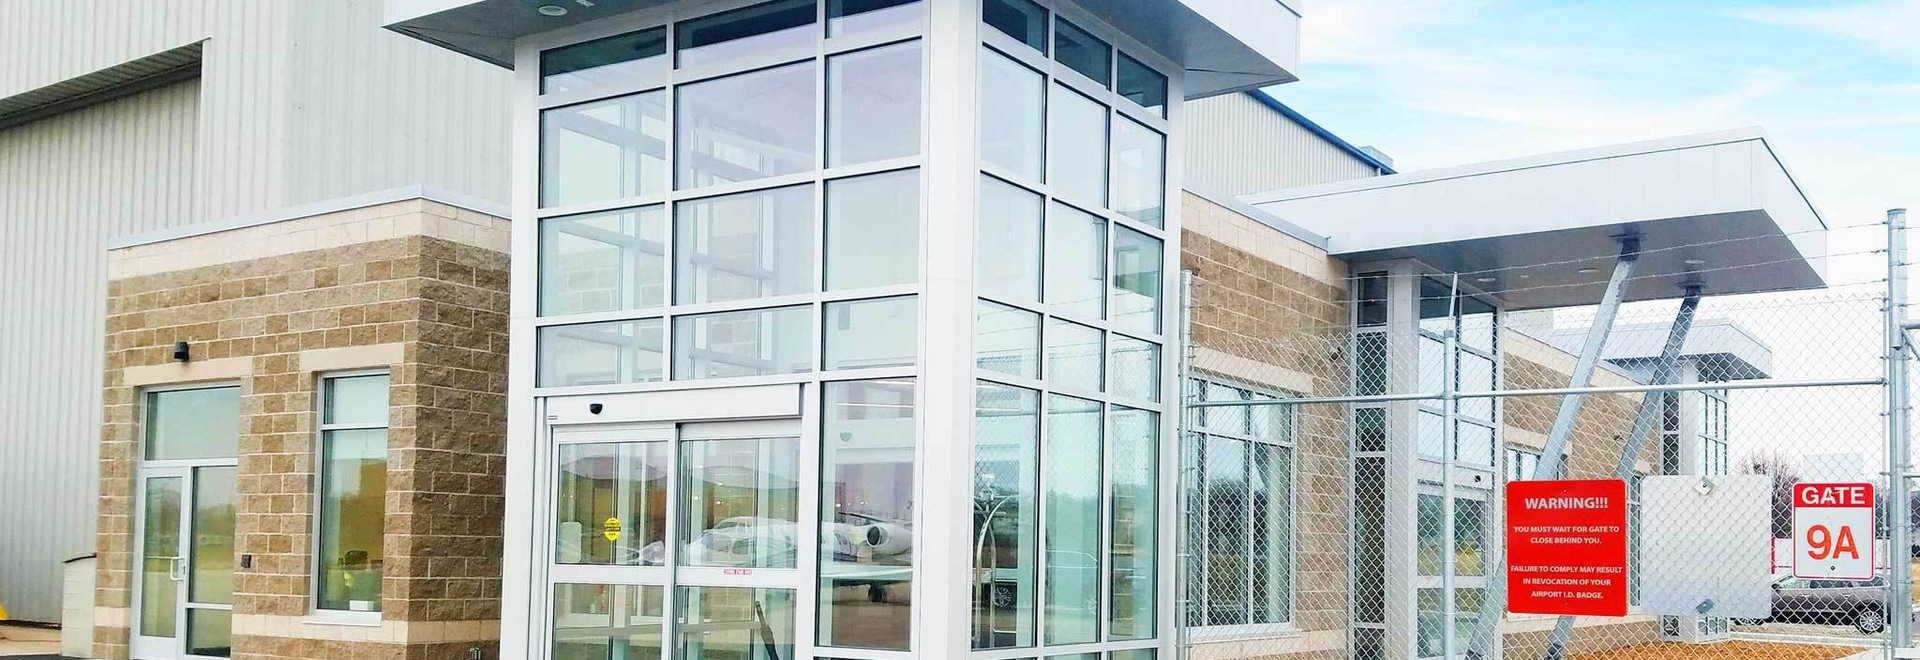 Avflight's FBO at Milwaukee's General MItchell International Airport has started off the year in its new 3,300 sq ft terminal.